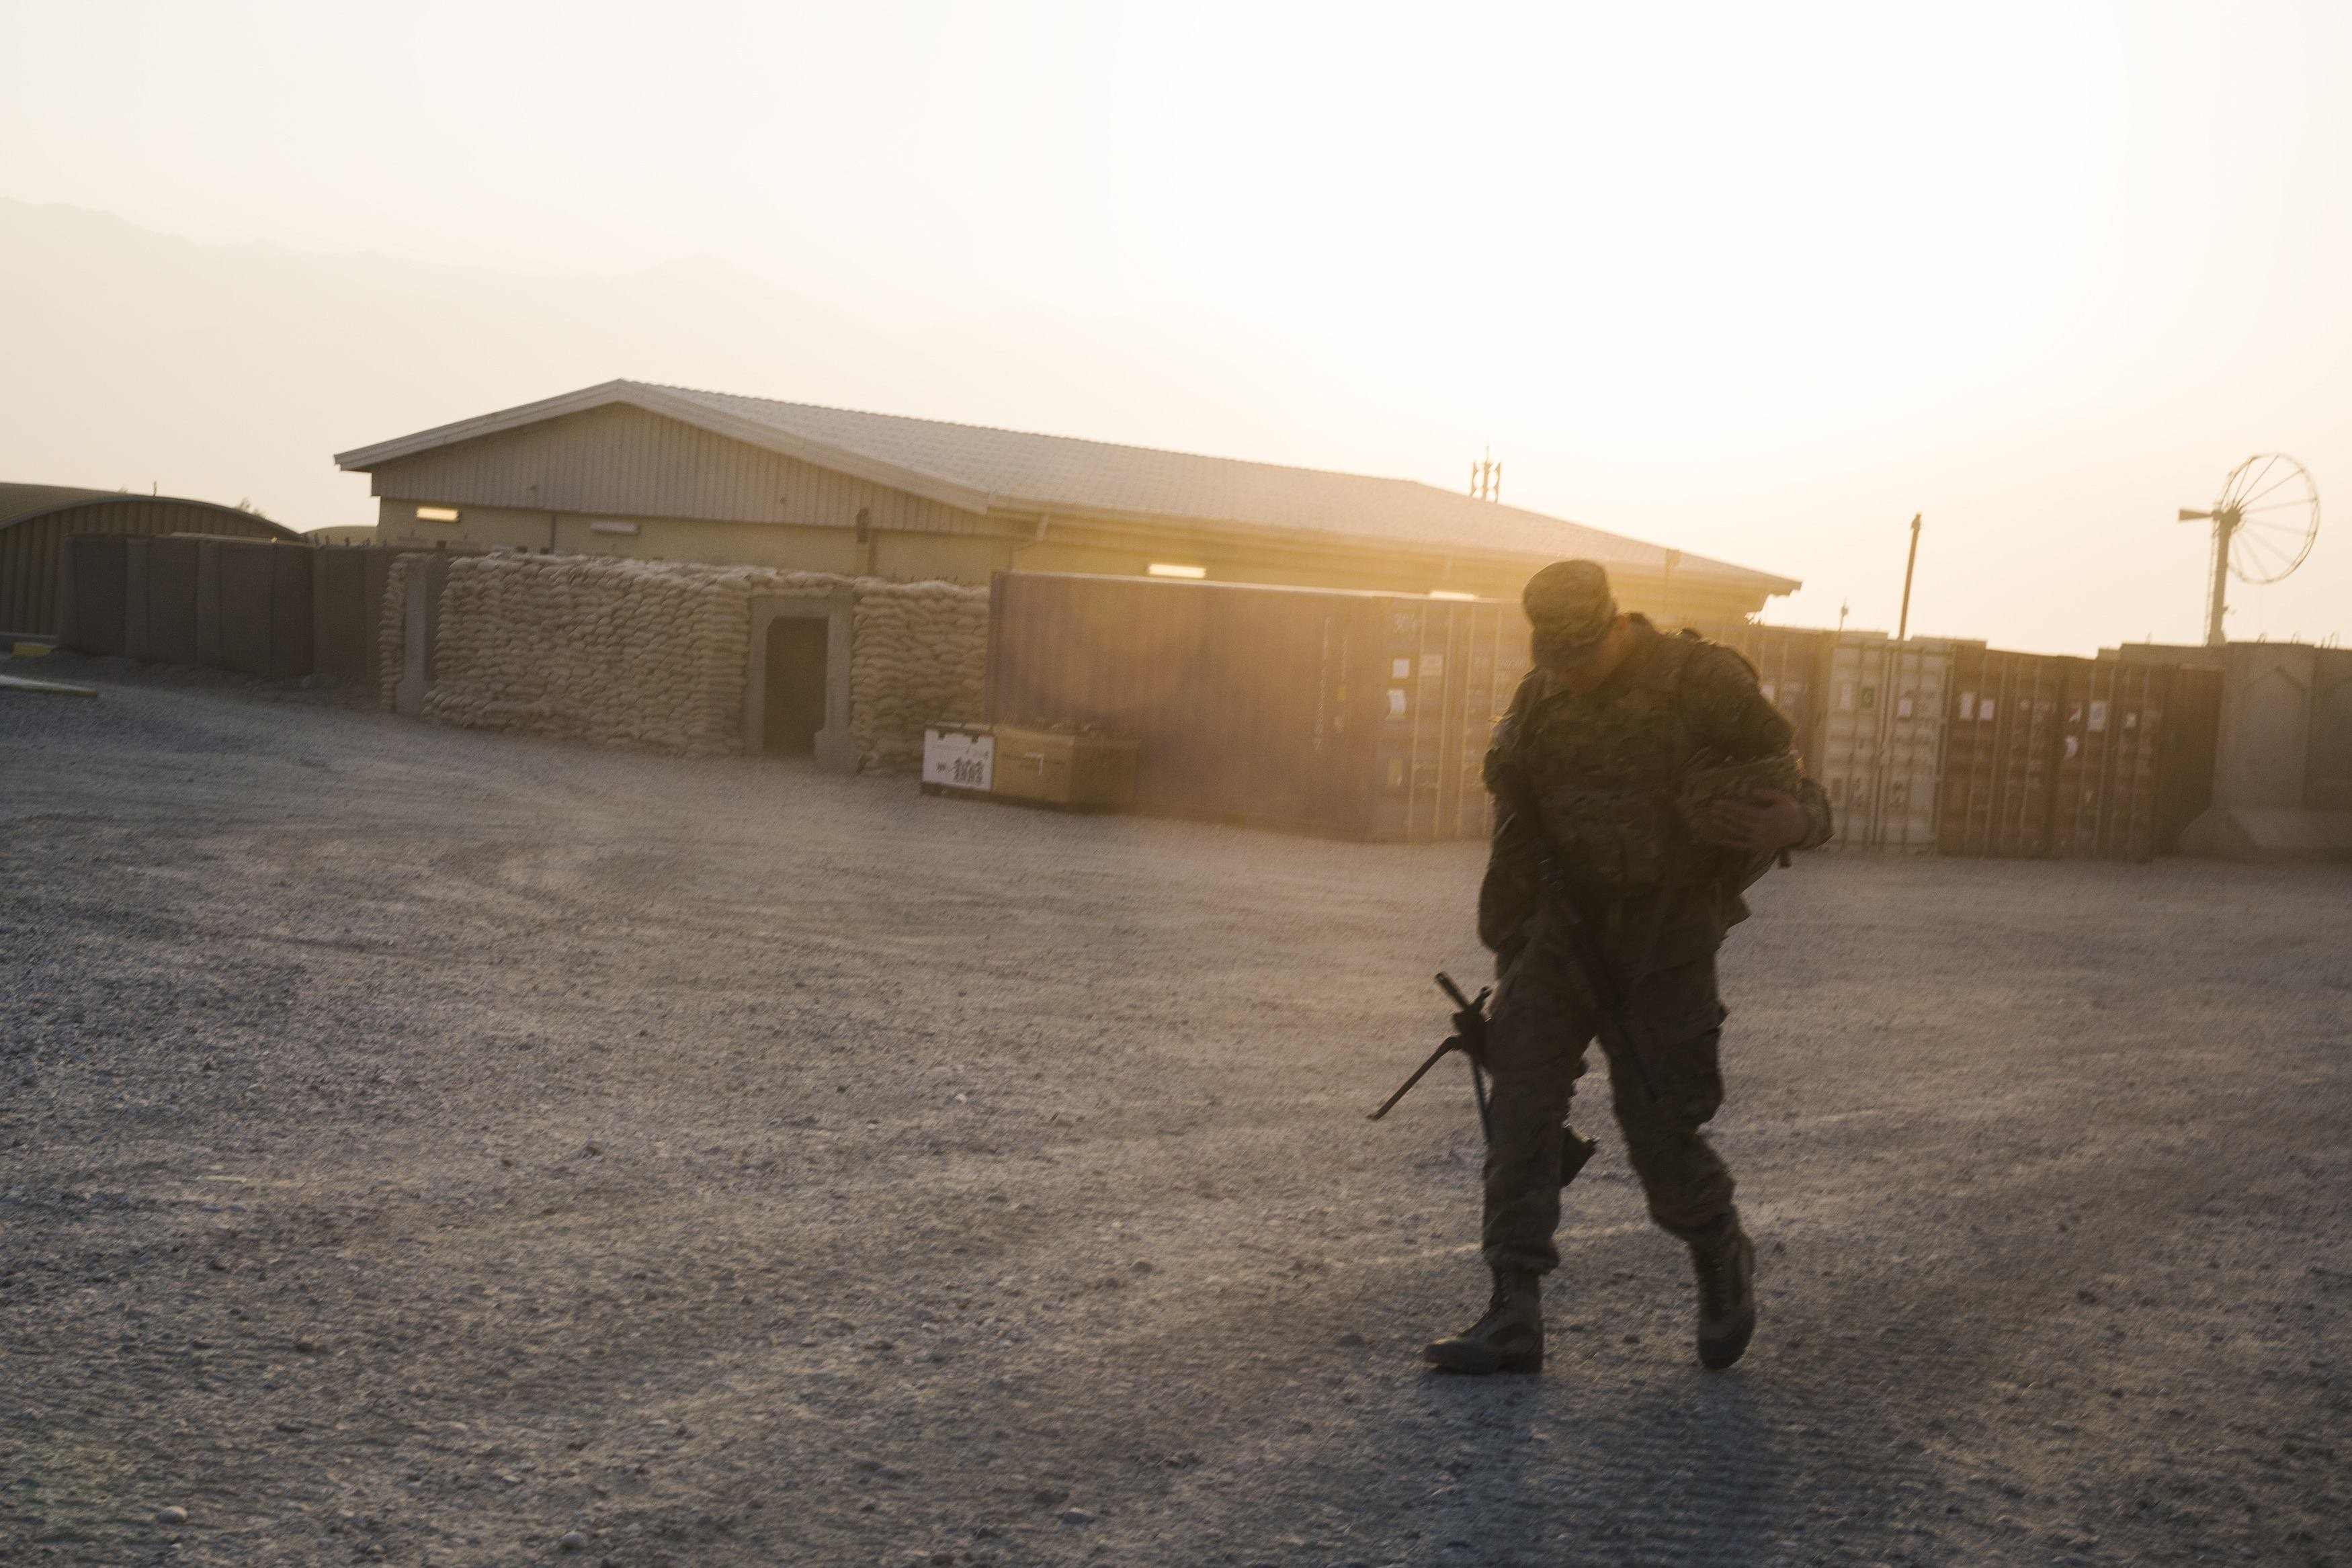 A U.S. soldier from the 3rd Cavalry Regiment walks with his rifle, after returning from a mission at forward operating base Gamberi, in the Laghman province of Afghanistan, Dec. 15, 2014.